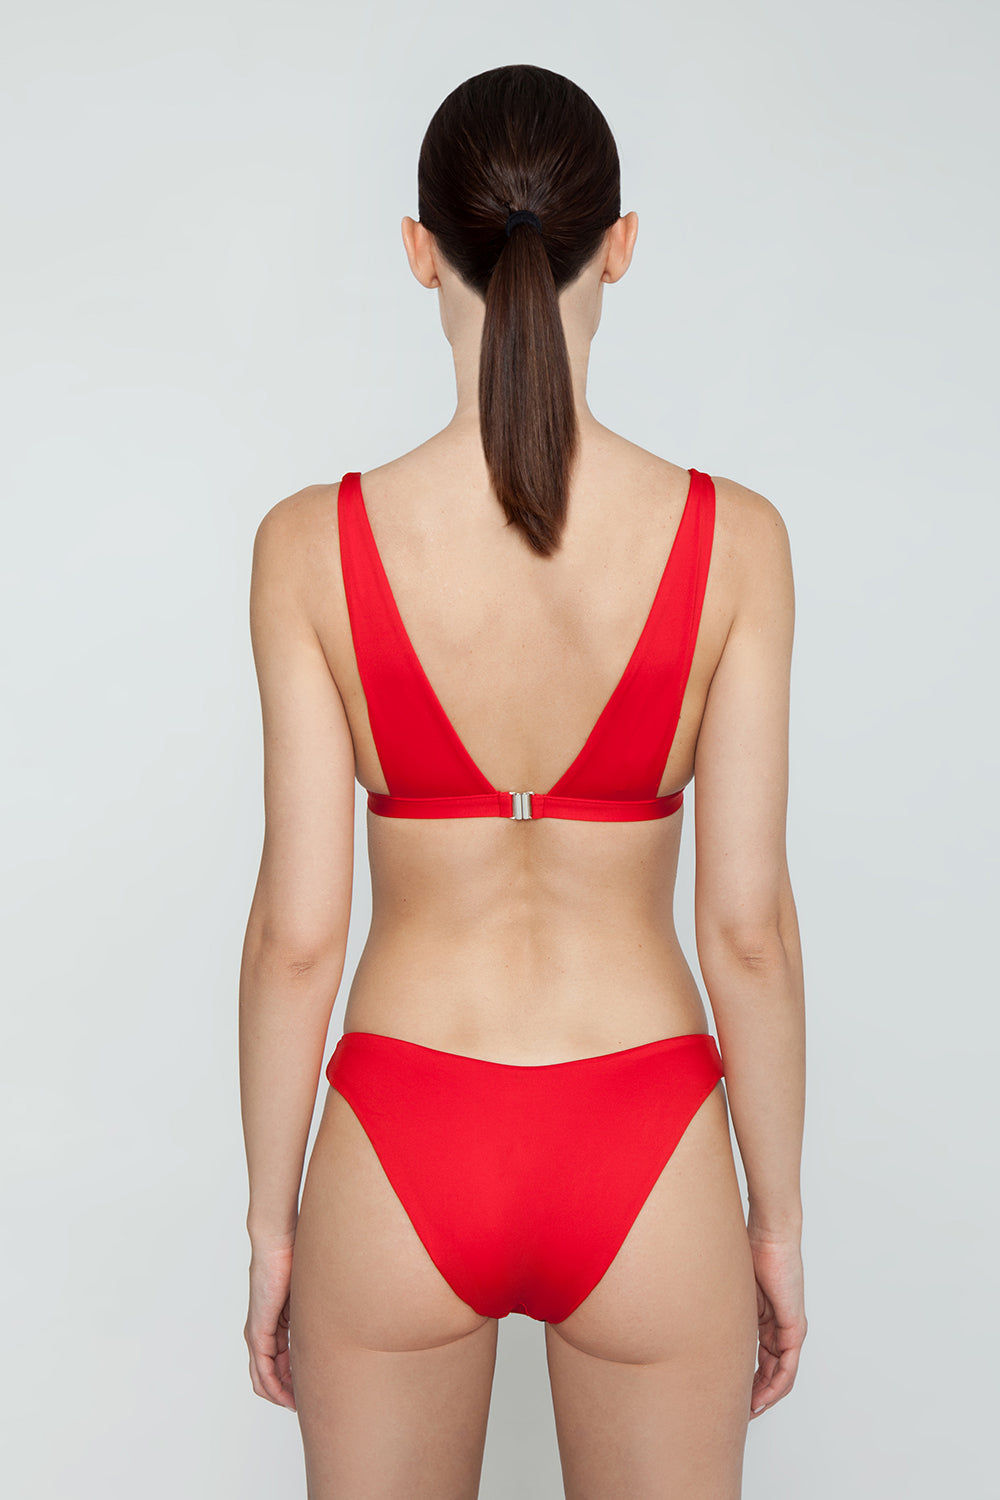 MONICA HANSEN BEACHWEAR Babe Watch V Bikini Bottom - Red Bikini Bottom | Red| Monica Hansen Beachwear Babe Watch V Bikini Bottom - Red Features:  Waist cut down in a V shape in front and in back Sides can be worn low rise or mid rise High cut leg  Cheeky coverage Italian fabric 85% Nylon 15% Elastane Manufactured in Italy Hand wash cold.  Dry Flat Back View